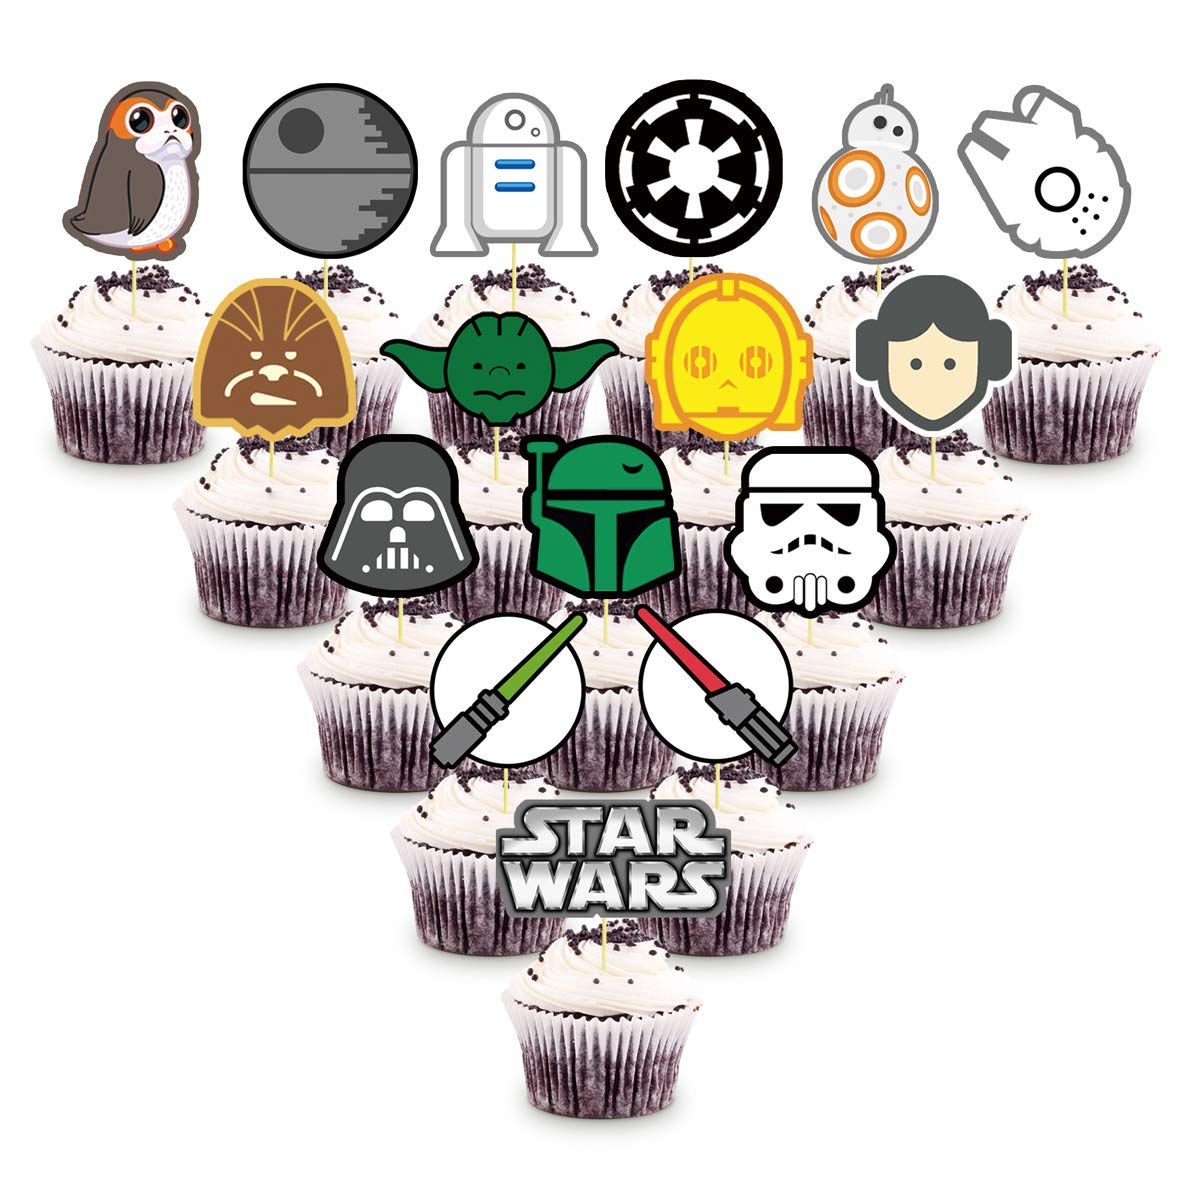 ONE PHOENIX Cake Decorations for Star Wars Cupcake Toppers, 32 counts